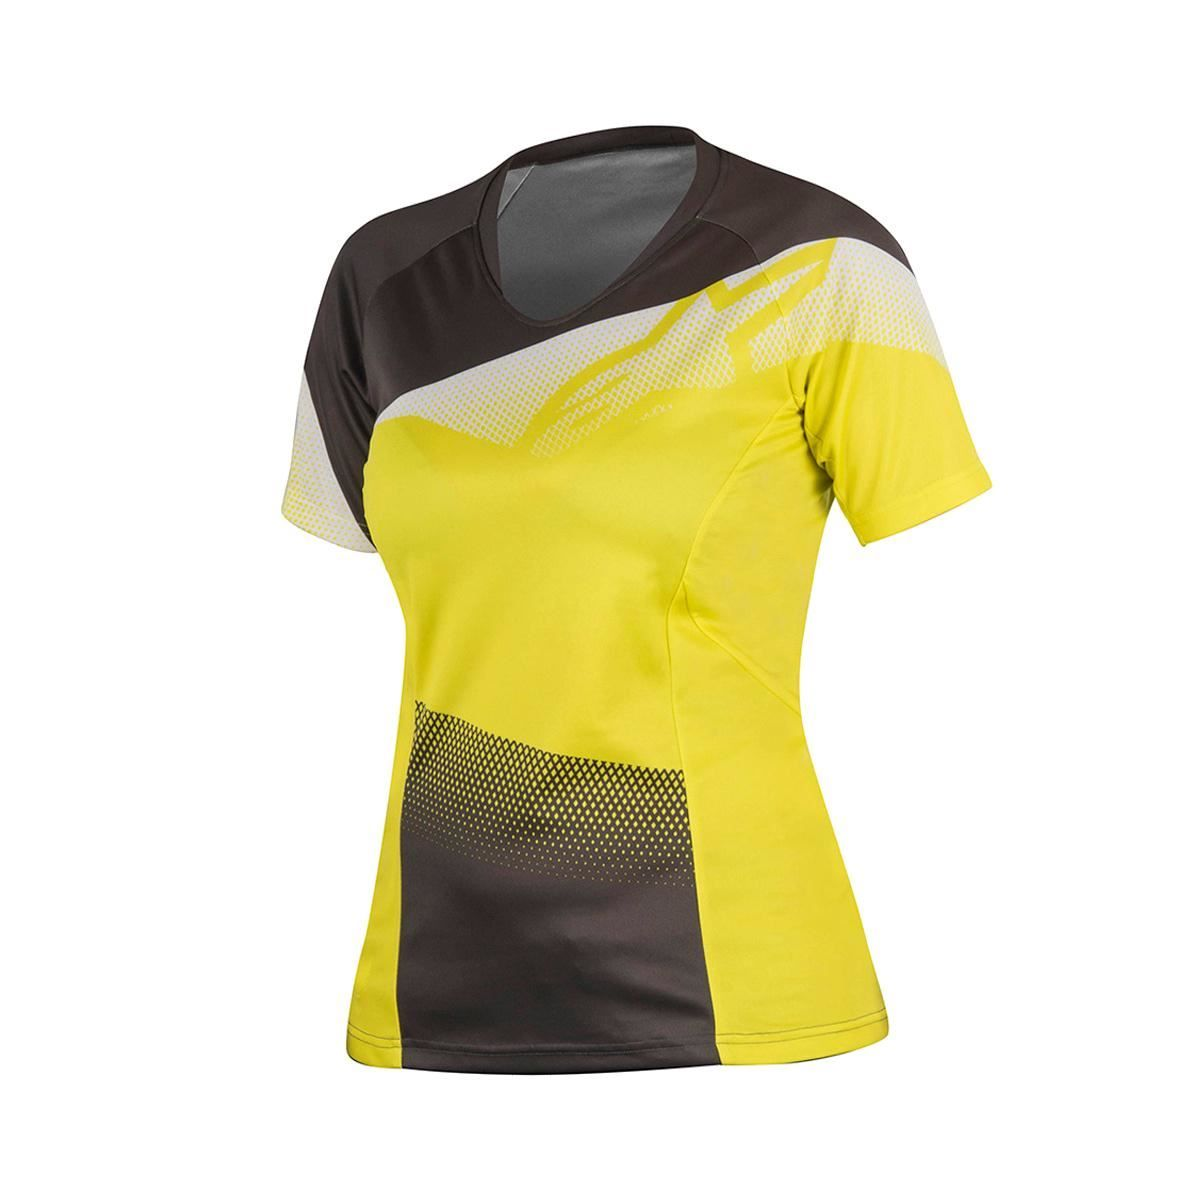 Alpinestars Stella Mesa Short Sleeve Jersey 2017: Acid Yellow/Dark Shadow S